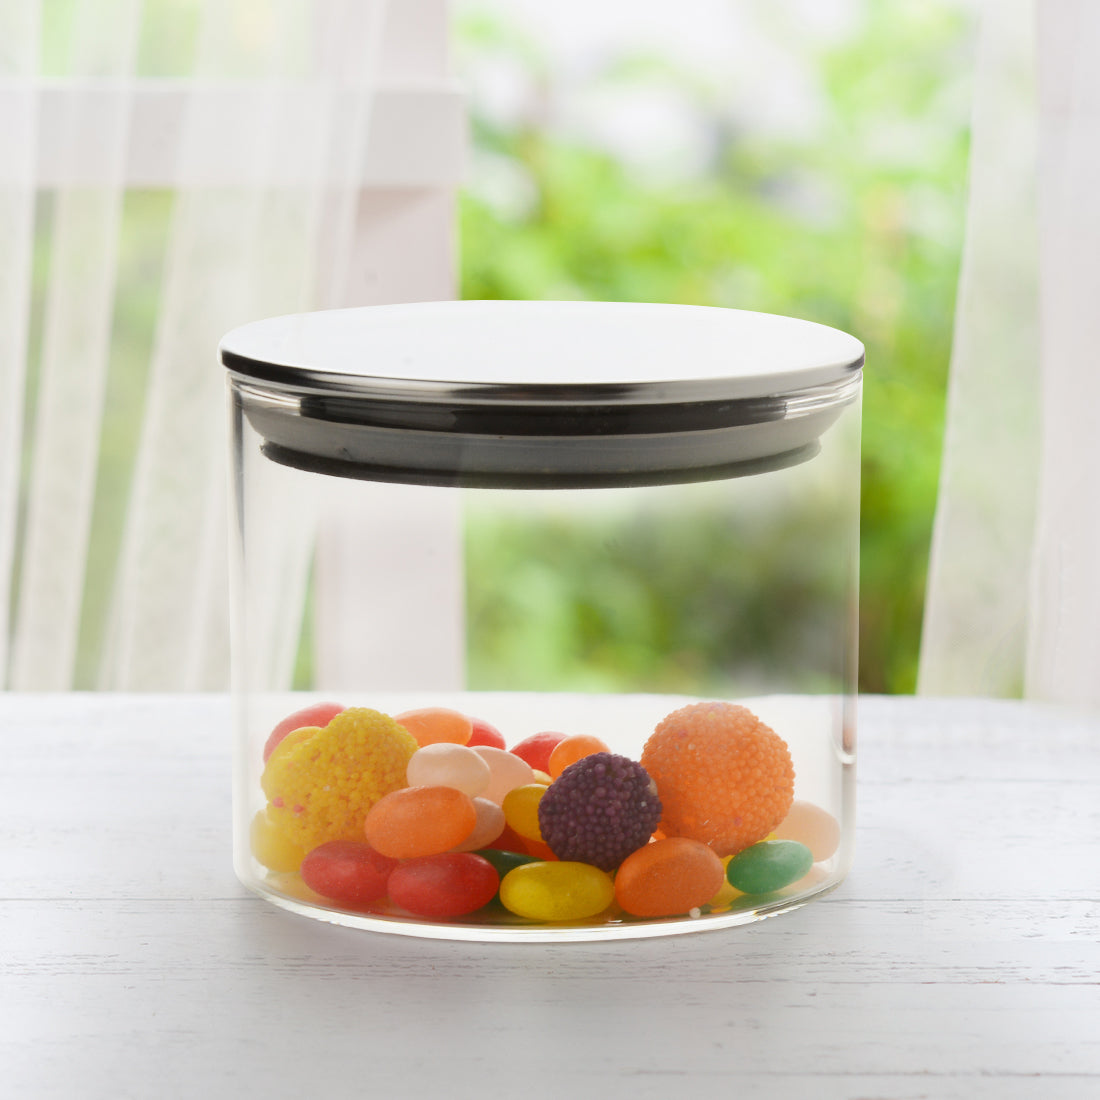 Classic Borosilicate Round Glass Air Tight Jar 350ml - Set Of 2 Pcs By Wonderchef